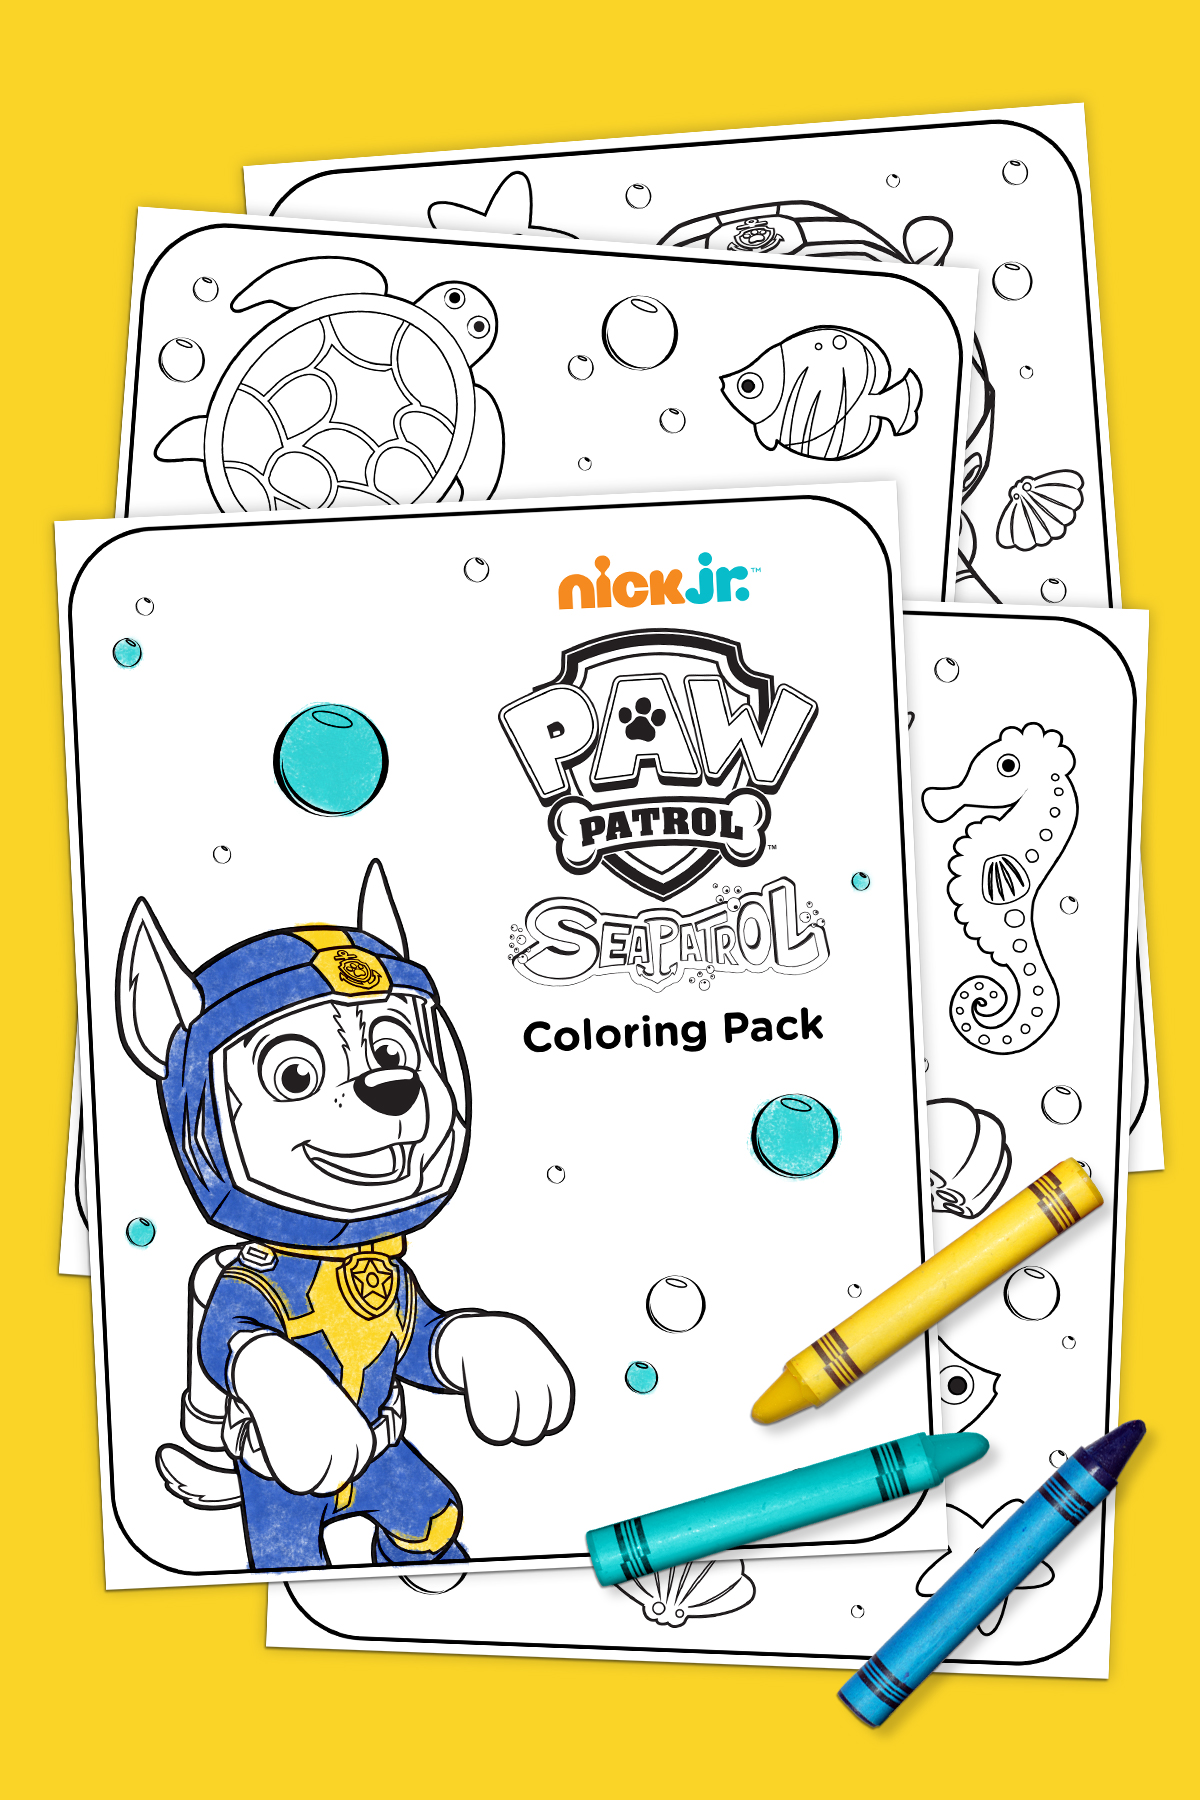 sea patrol coloring pack